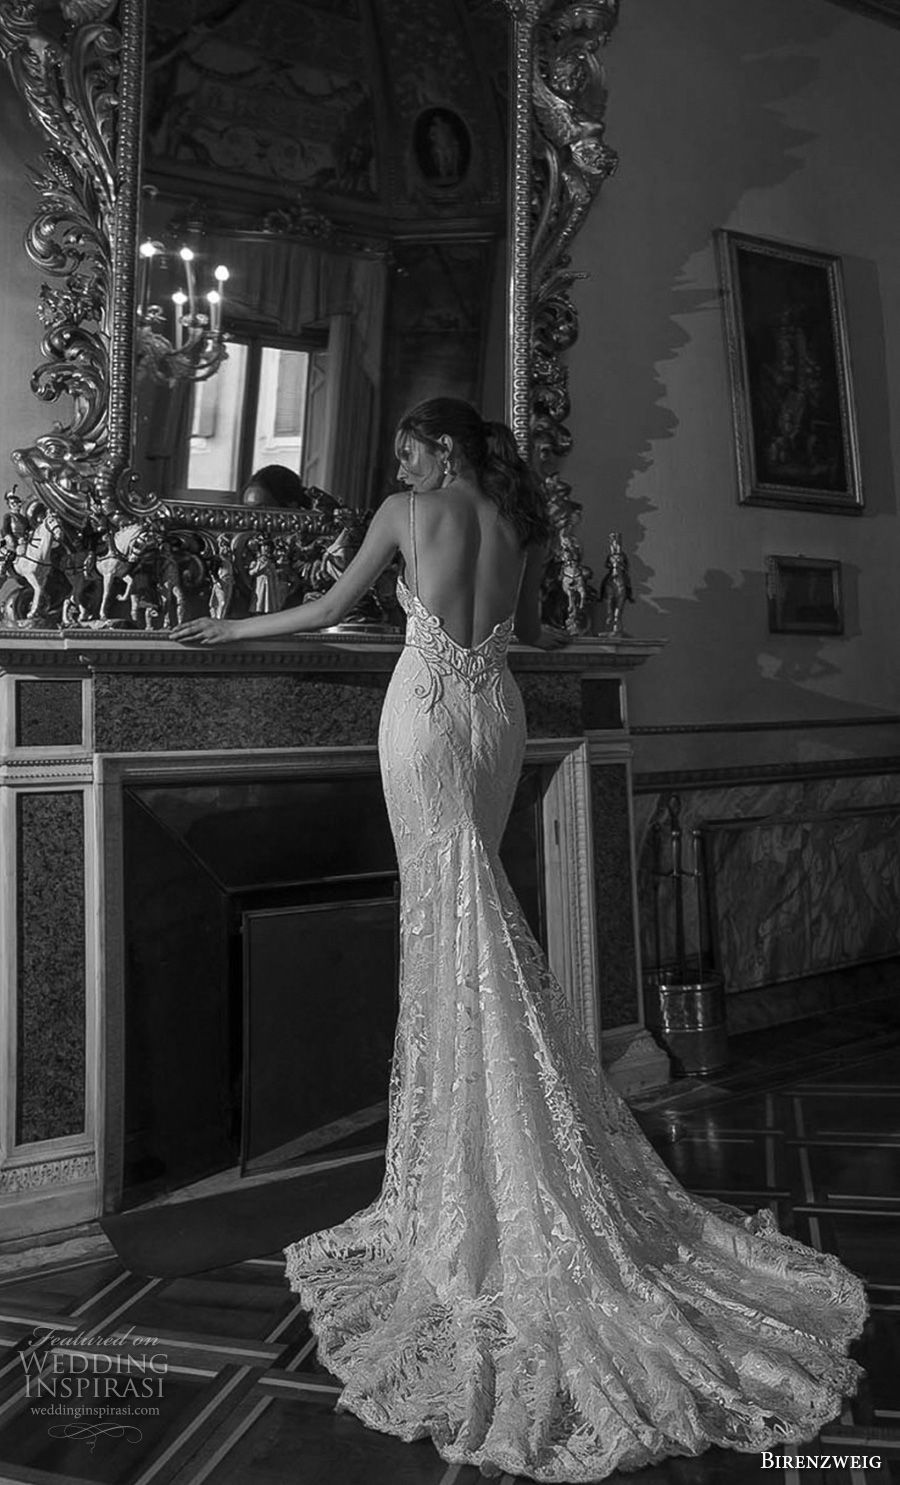 birenzweig 2018 bridal spaghetti strap deep plunging sweetheart neckline full embellishment fit and flare wedding dress open back chapel train (16) bv